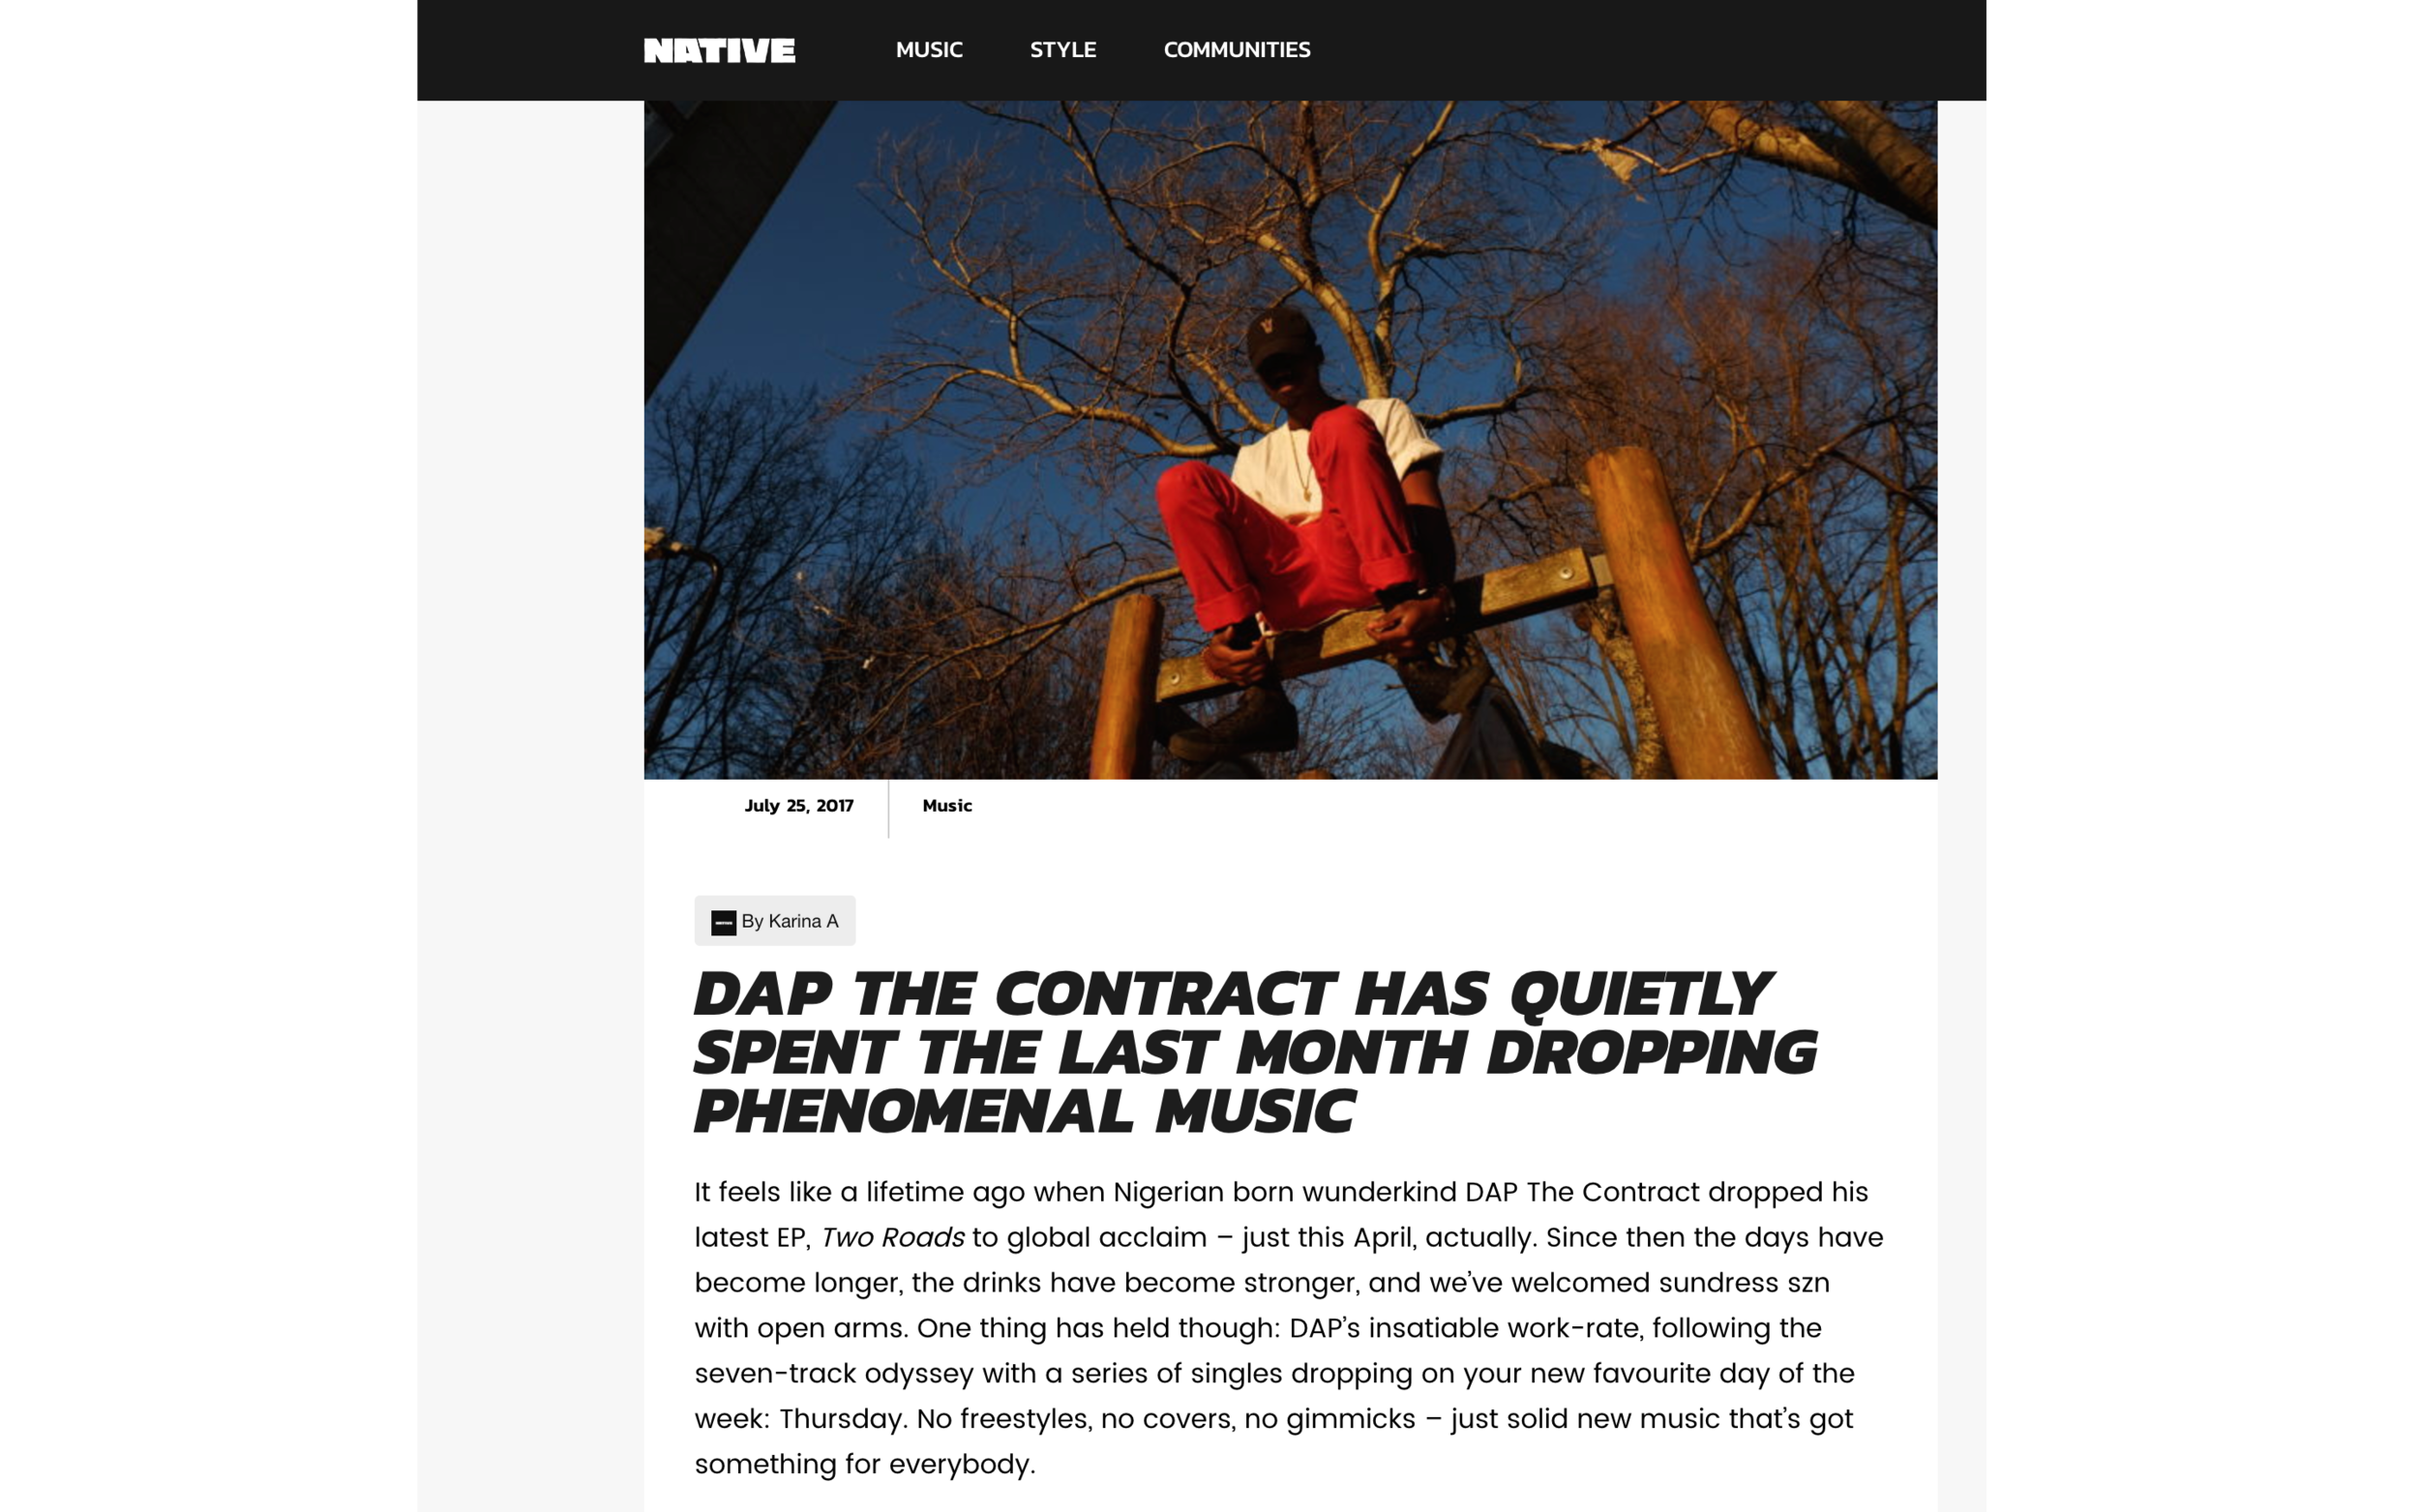 http://thenativemag.com/music/dap-contract-quietly-spent-last-month-dropping-phenomenal-music/ (Written by Karina So (@whatkarinasaid)